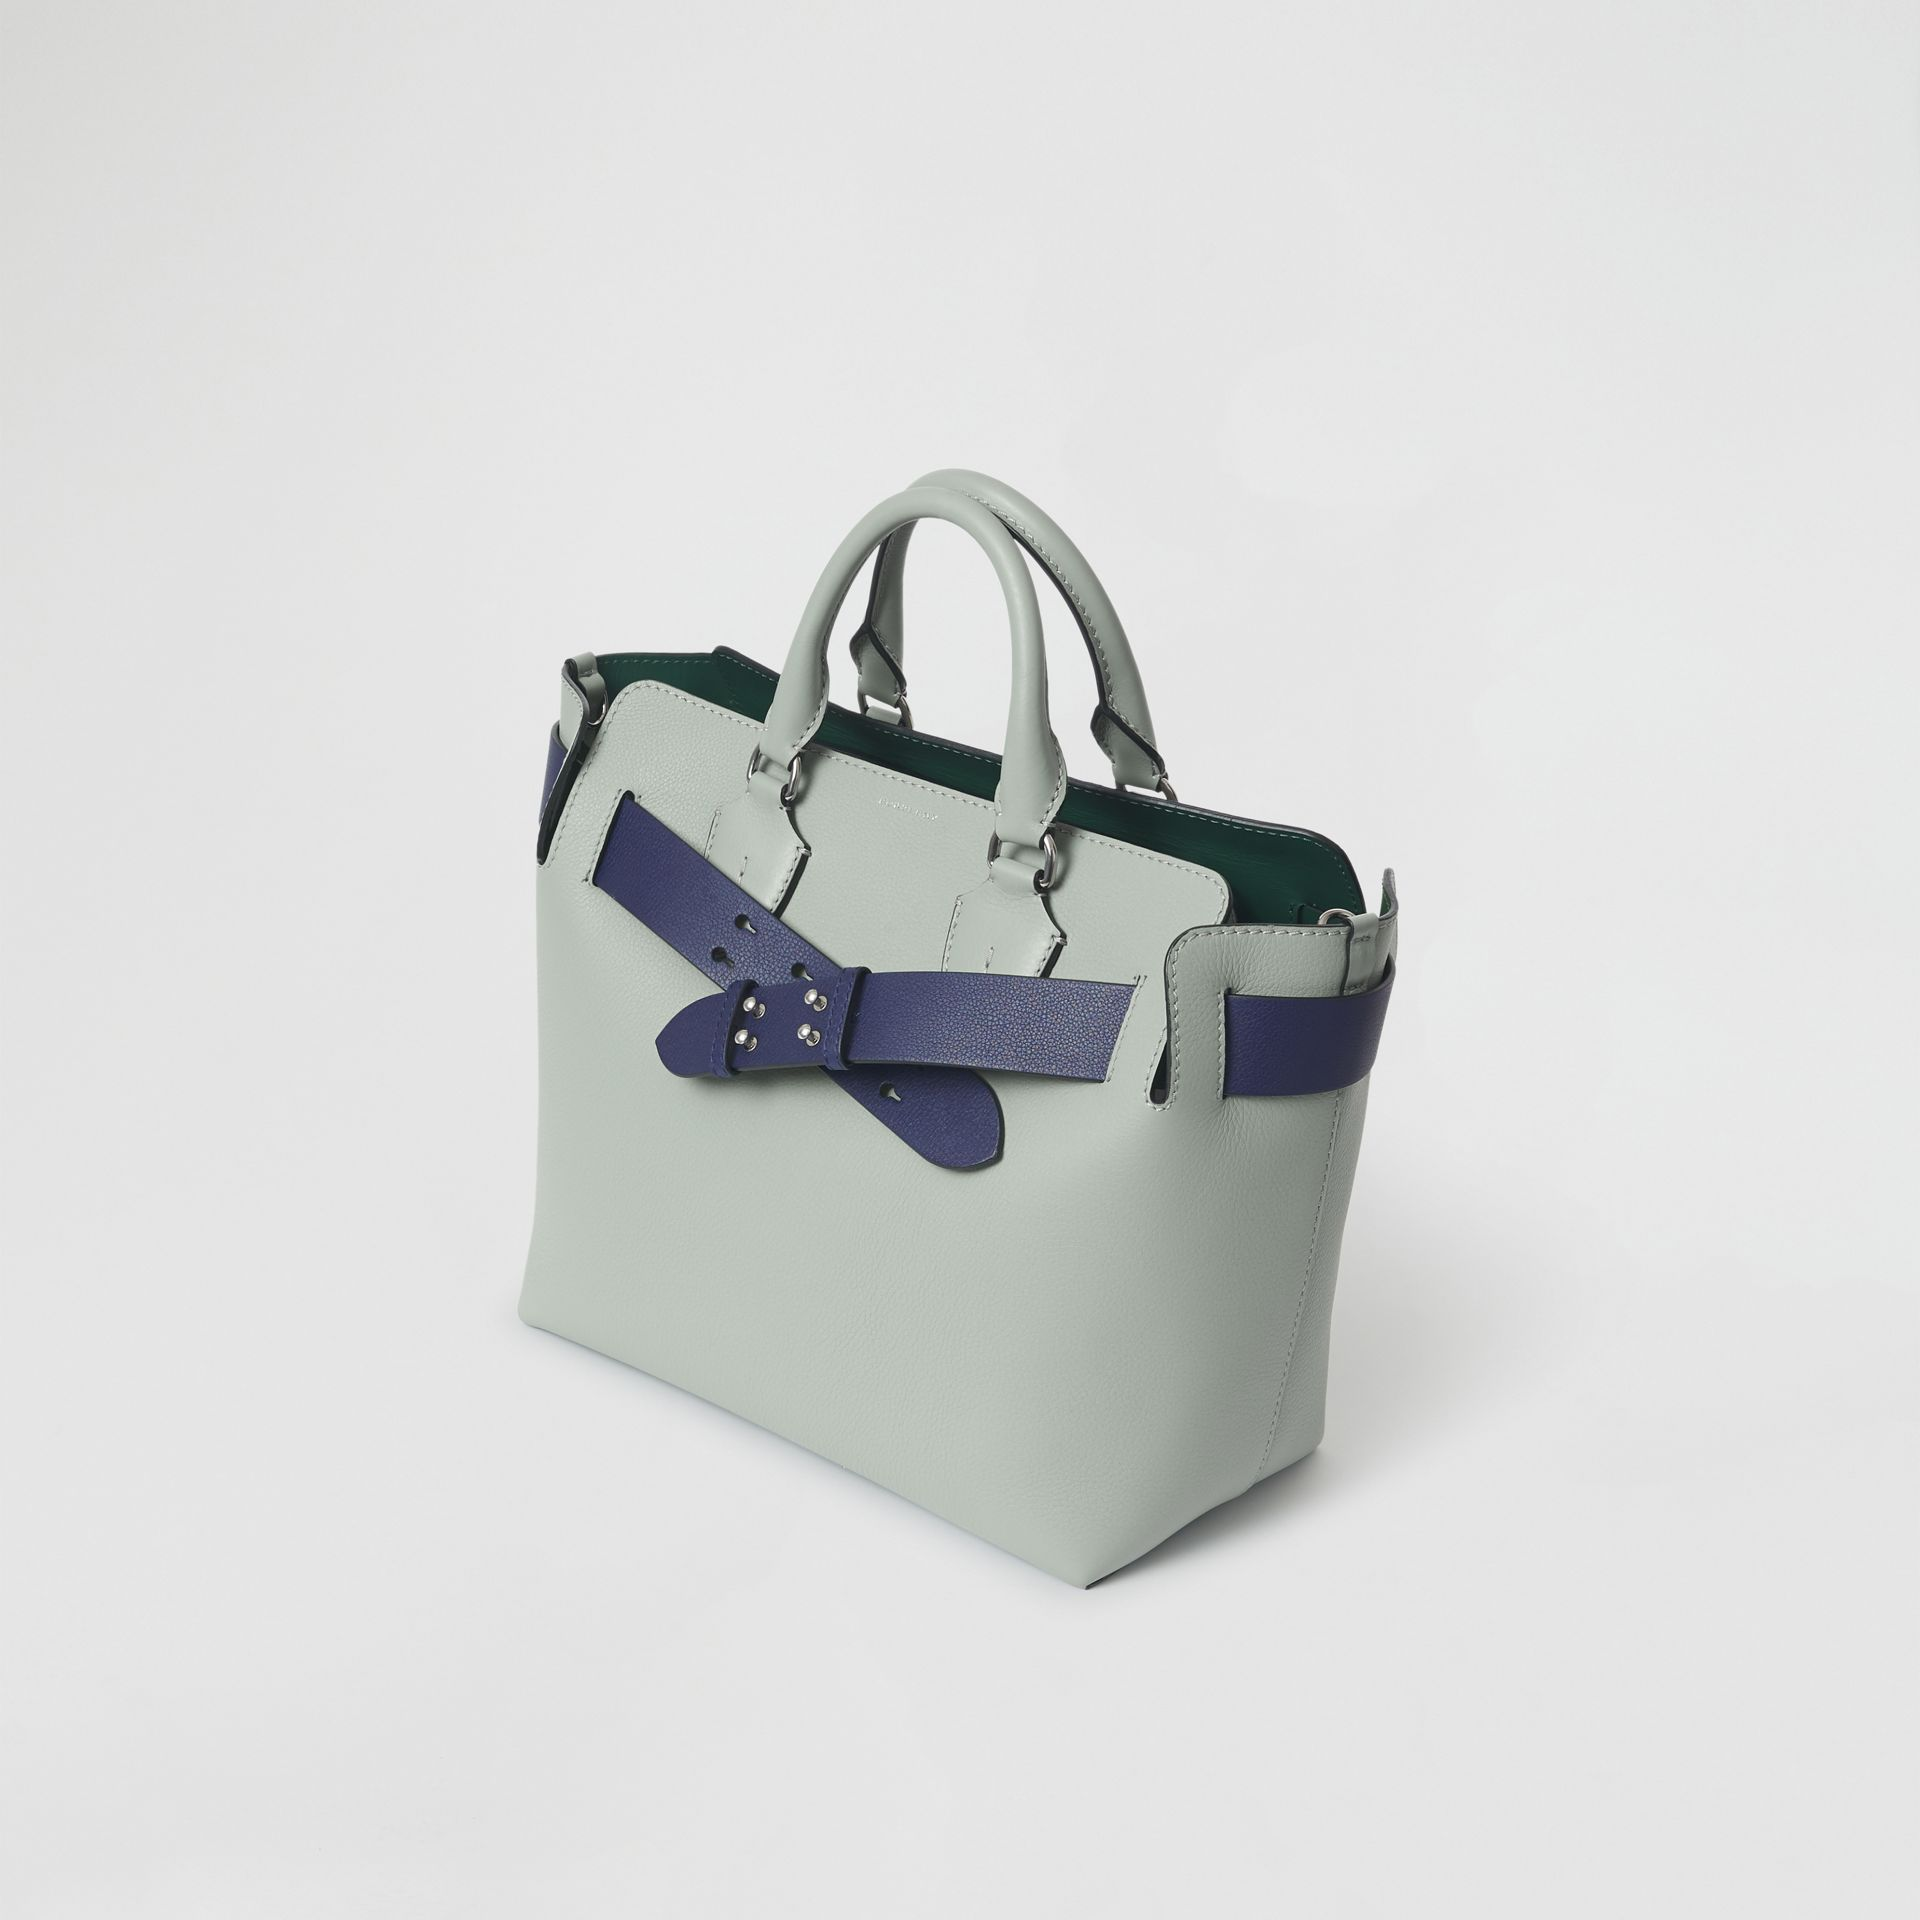 Borsa The Belt media in pelle (Blu Grigio) - Donna | Burberry - immagine della galleria 4